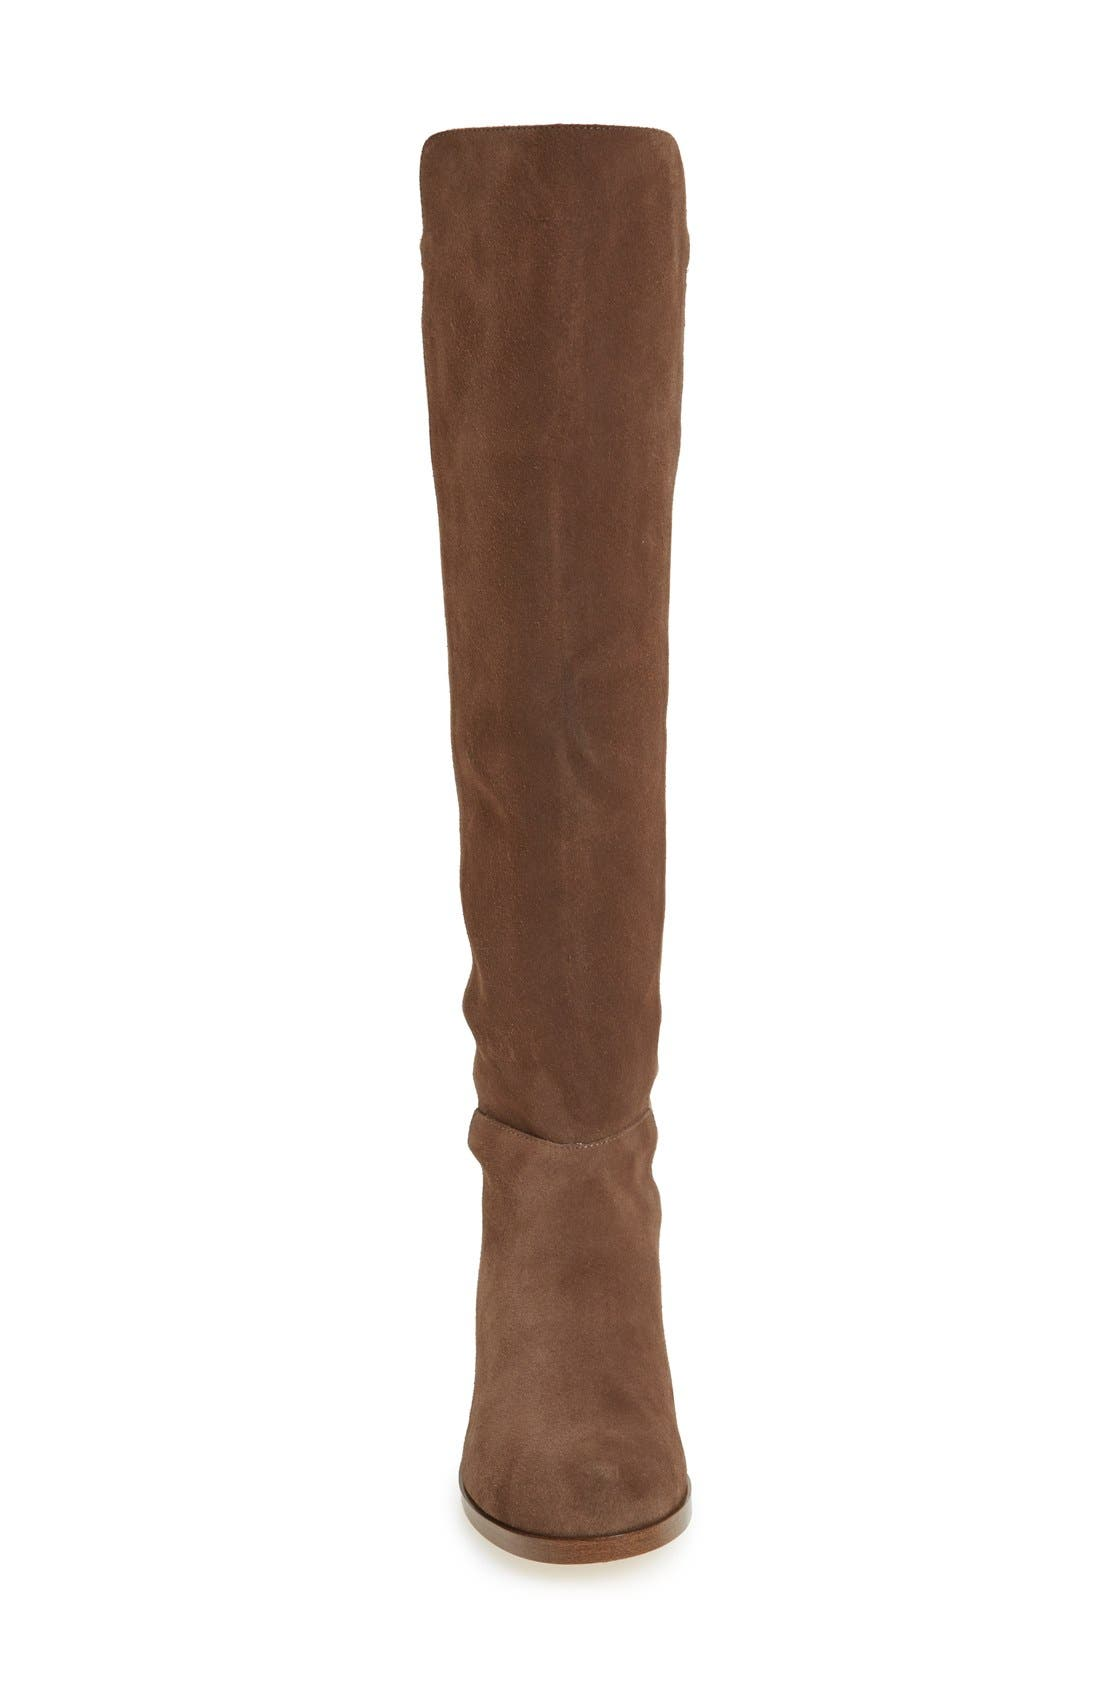 Calypso Over the Knee Boot,                             Alternate thumbnail 3, color,                             Taupe Suede